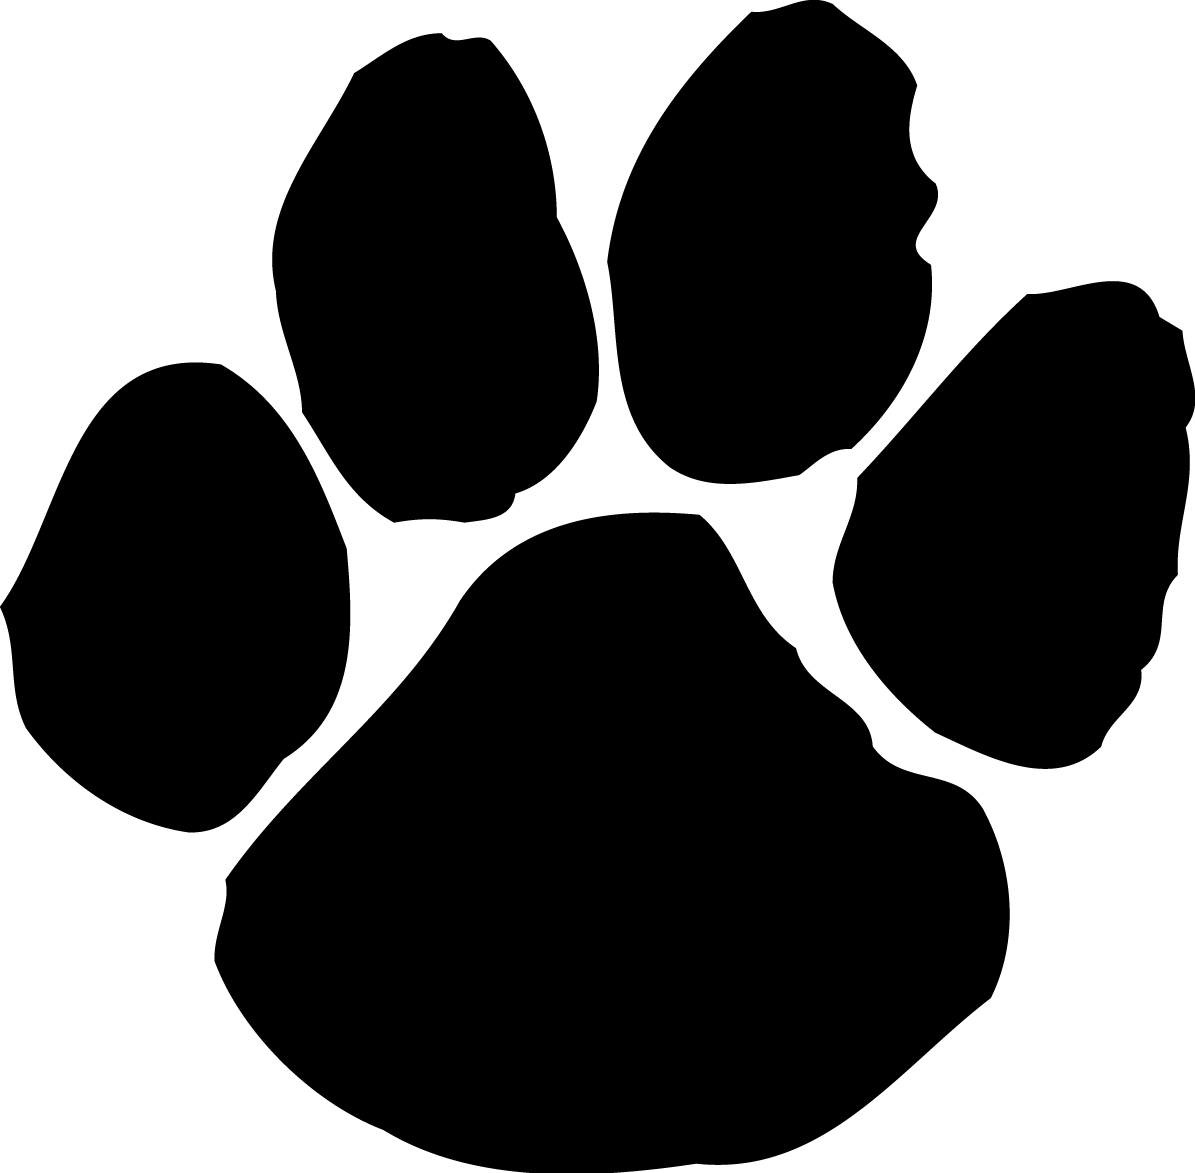 1195x1173 Paw Print Wildcats On Dog Paws Dog Paw Tattoos And Clip Art Image